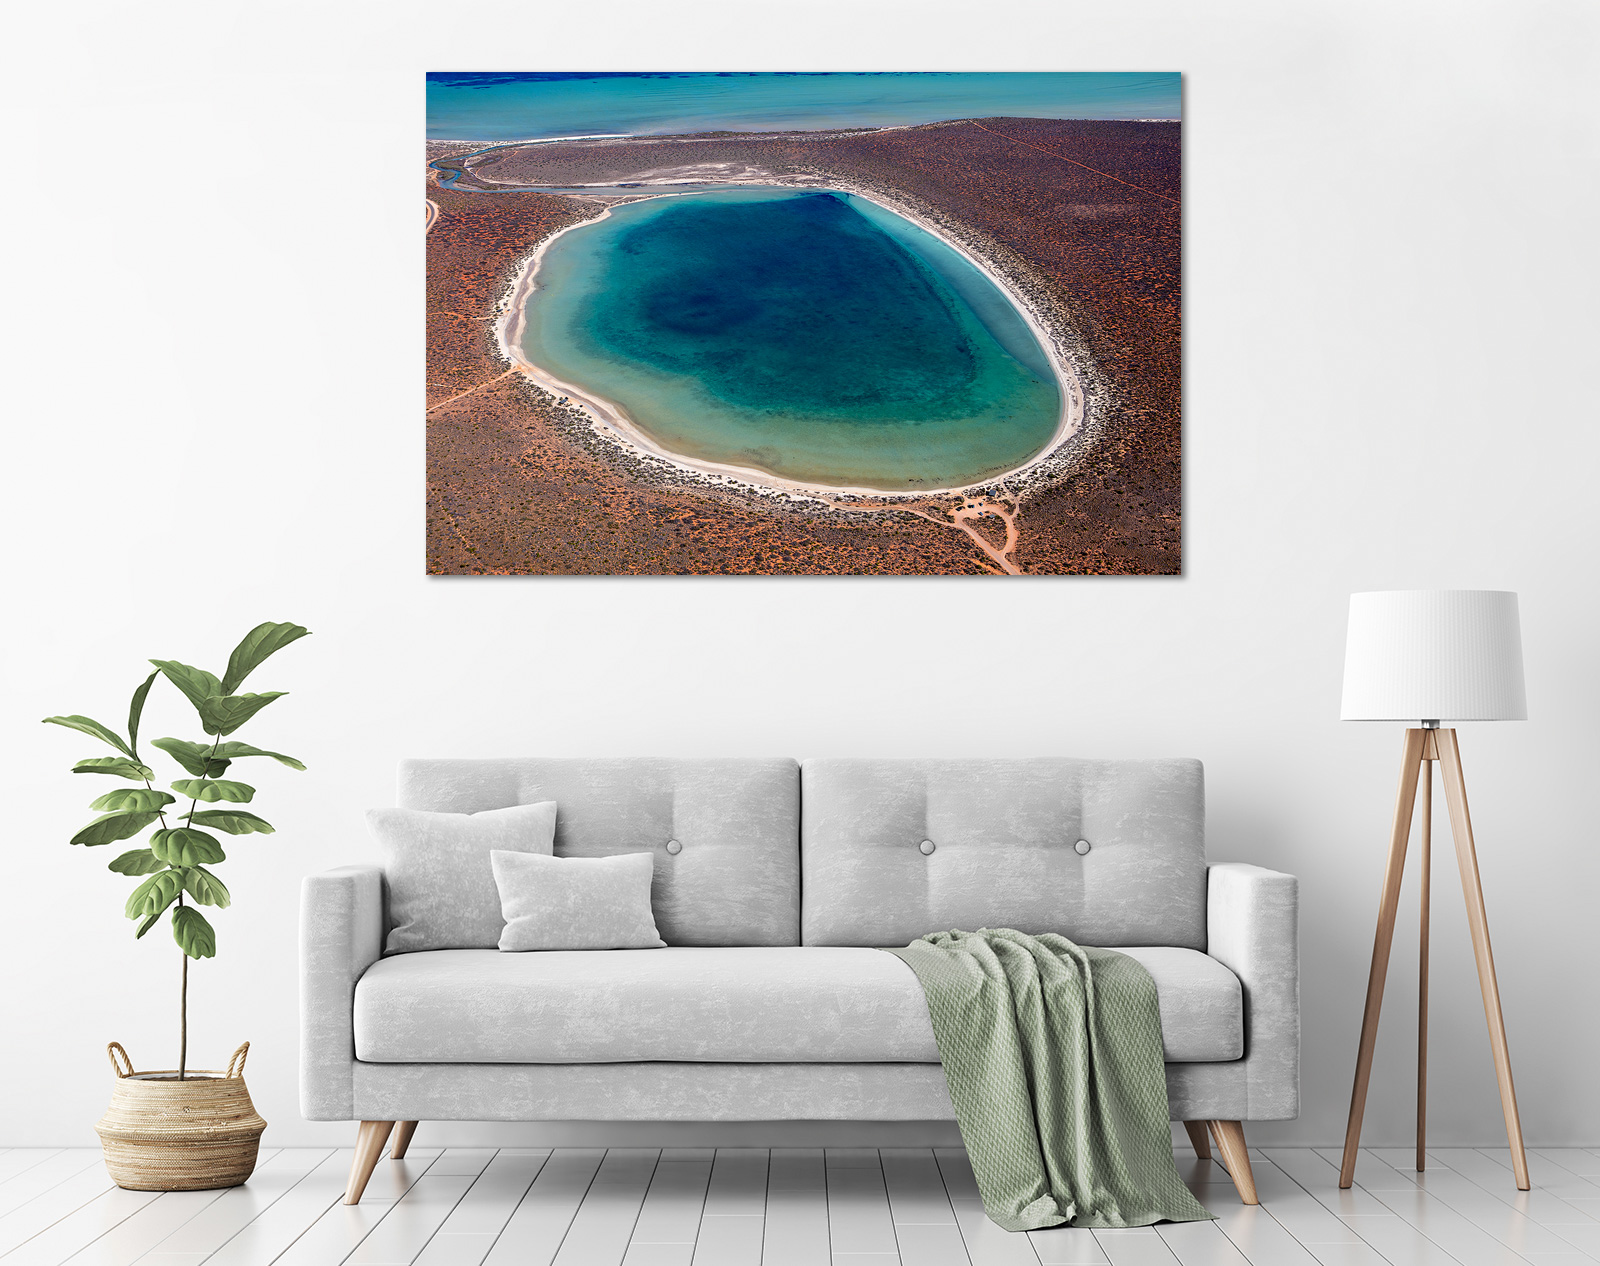 Jason Mazur - 'Little Lagoon, Shark Bay 303' in a room